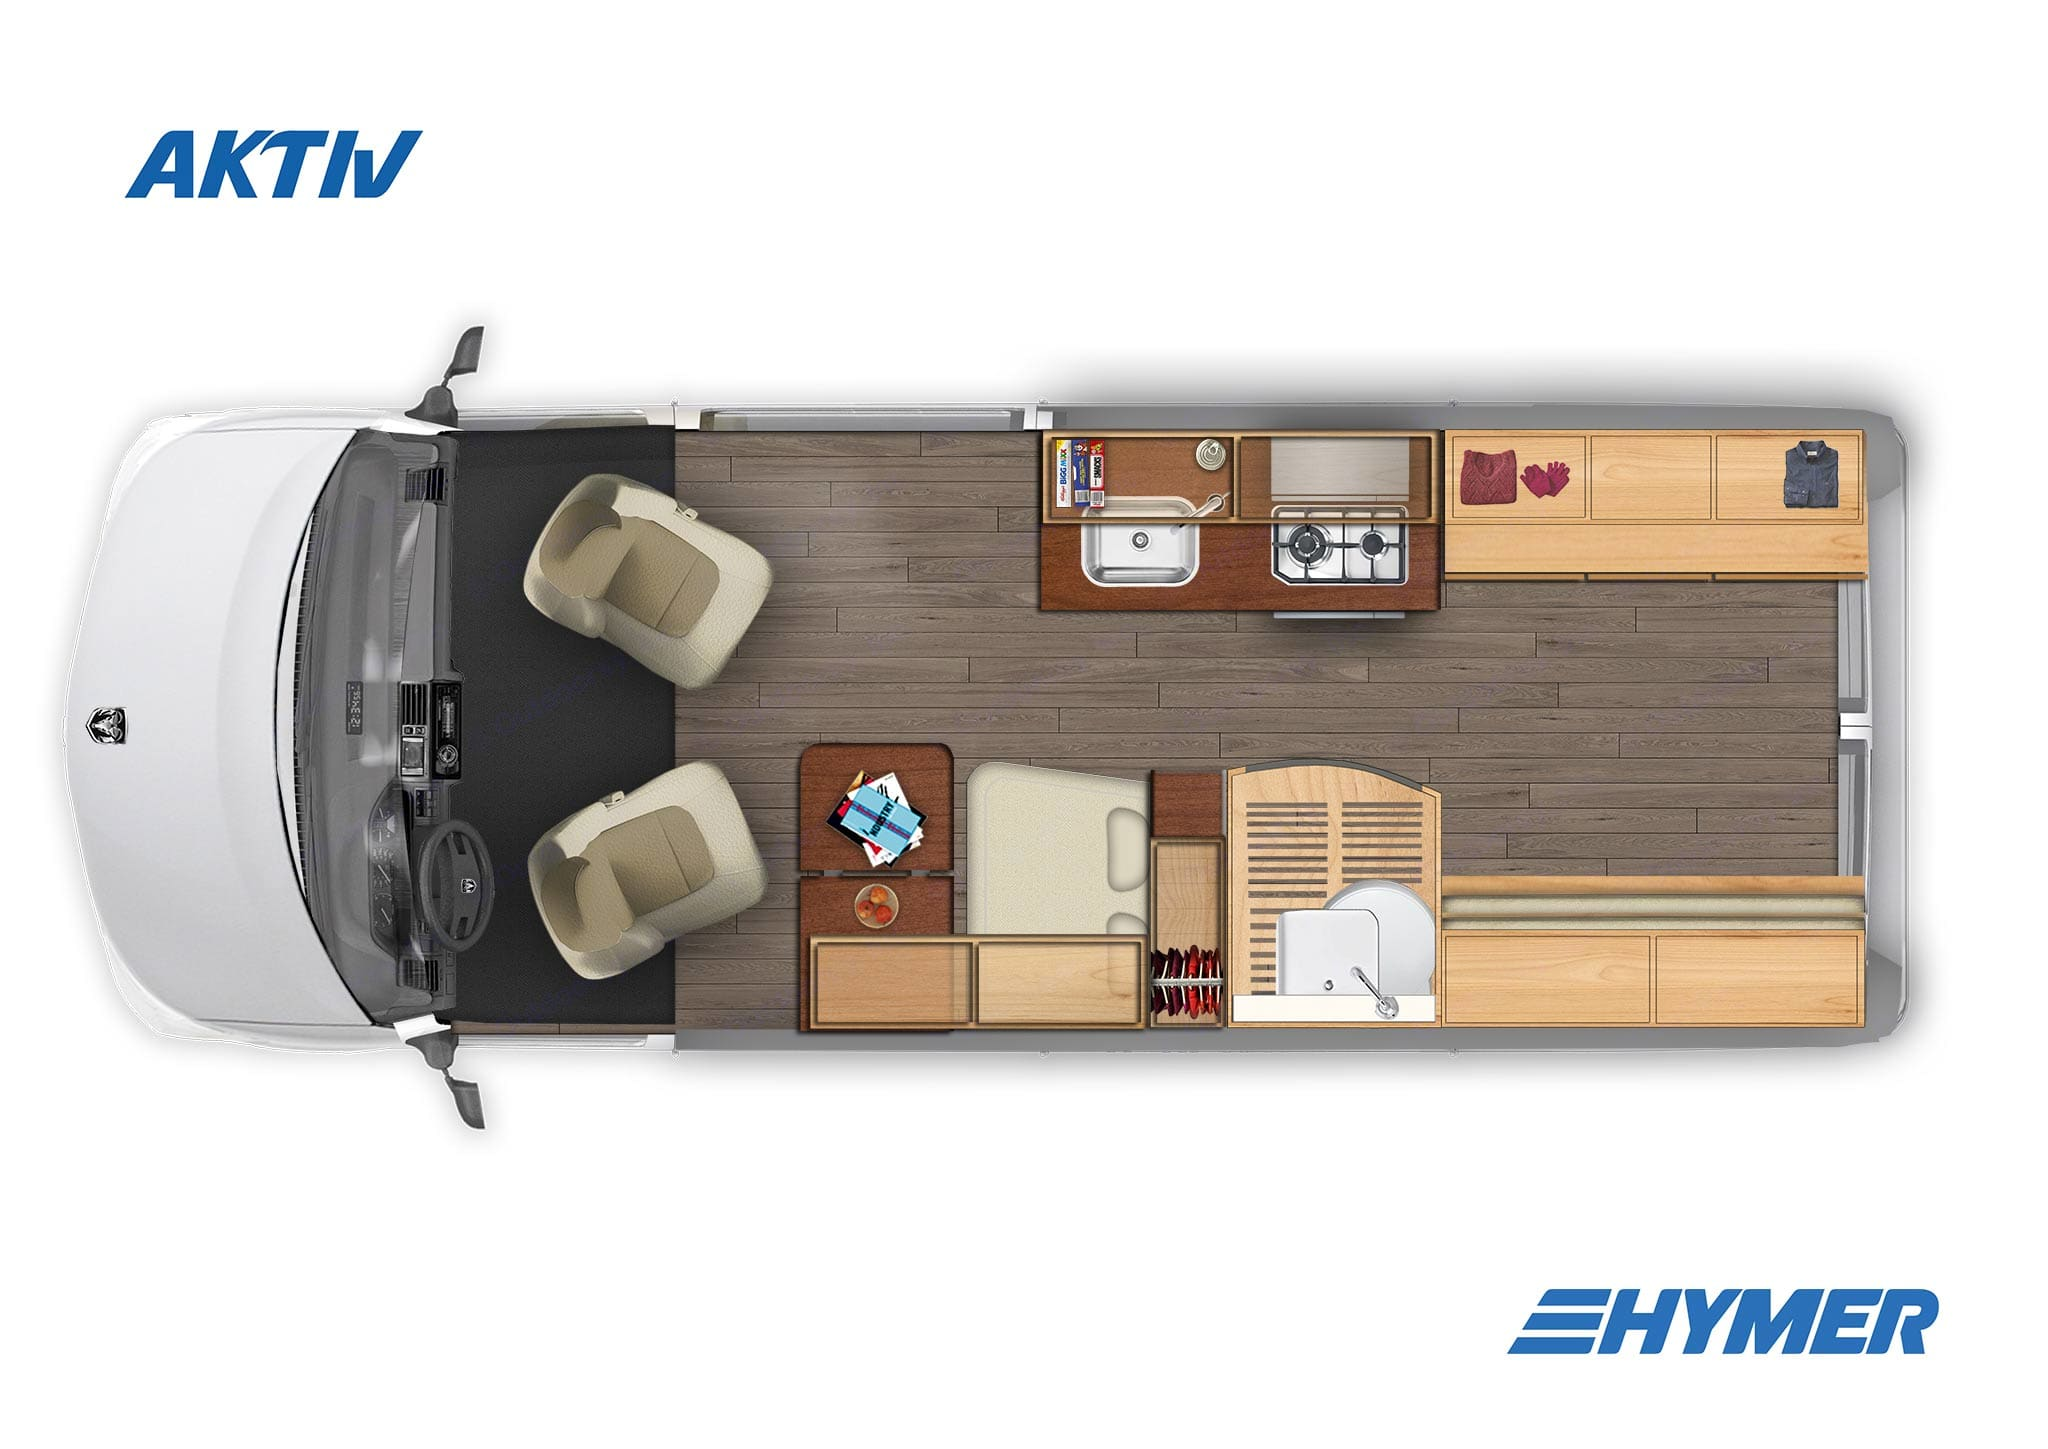 Day time arrangement w/ bed up. Hymer Aktiv 2018